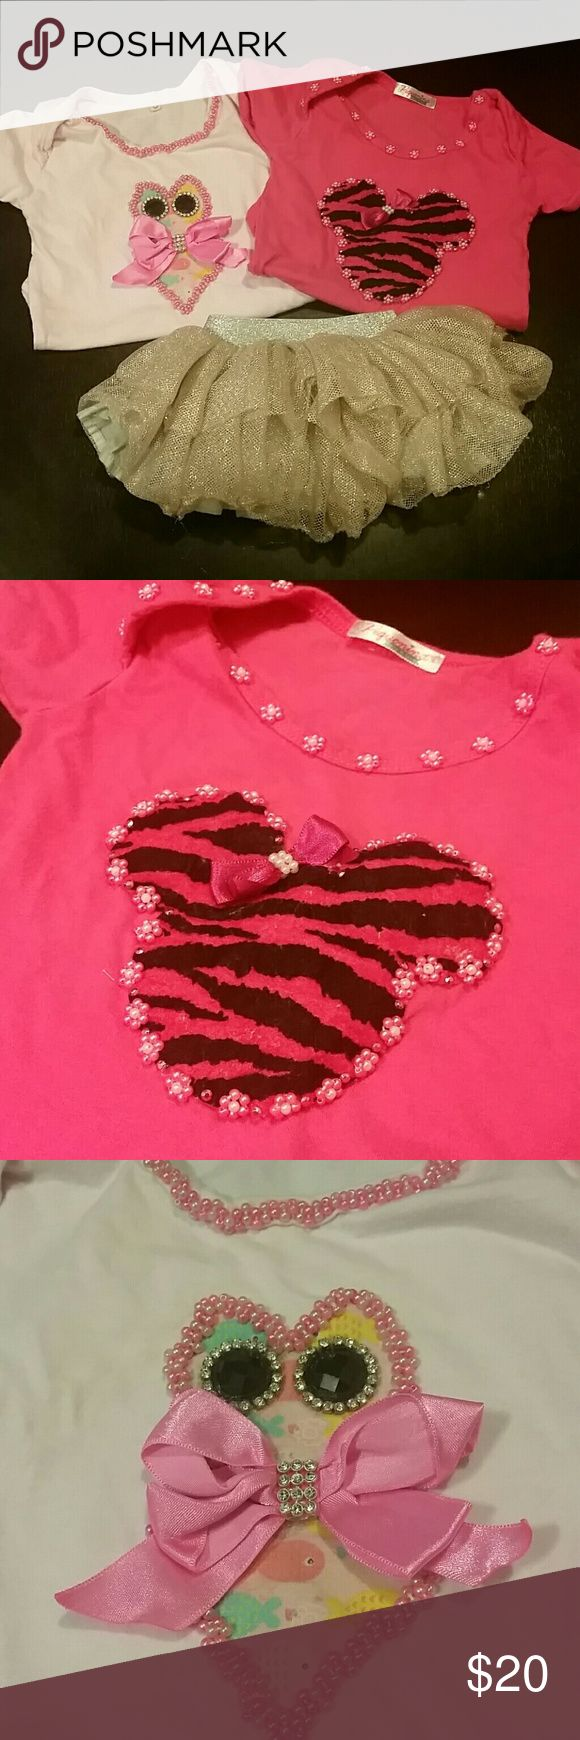 Customized onesies with tutu skirt. Customized onsies, mickey beaded with pink bow and zebra print, owl with pink bow ties and beaded neck and arms!! skirt is newborn size, onesies 0-3 unbranded Matching Sets